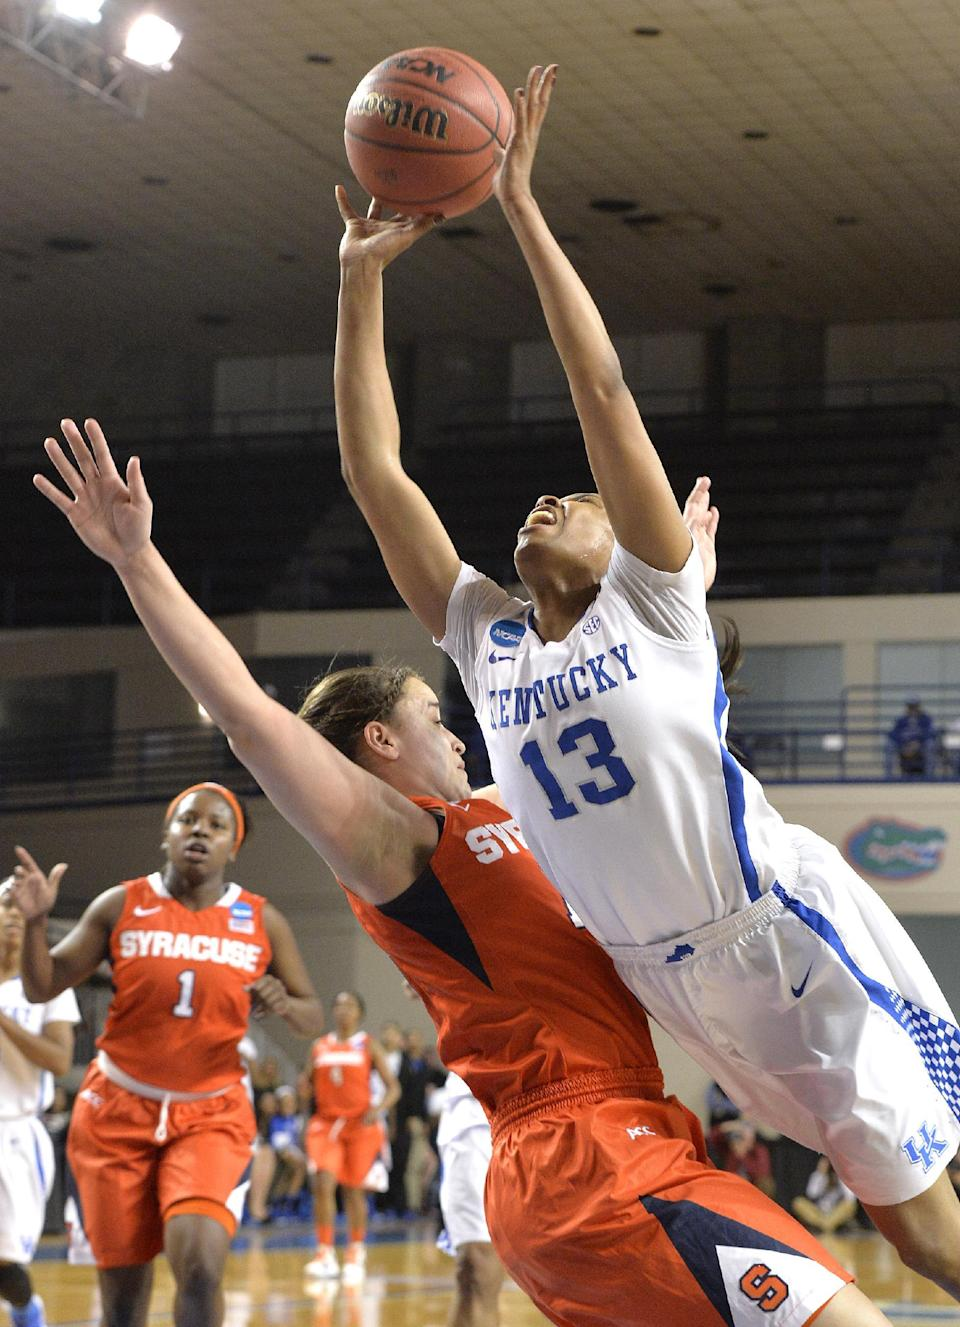 Kentucky's Bria Goss, right, puts up a shot while being blocked by Syracuse' Brianna Butler during the first half of a second-round game in the NCAA college basketball tournament in Lexington, Ky., Monday, March 24, 2014. Kentucky defeated Syracuse 64-59. (AP Photo/Timothy D. Easley)